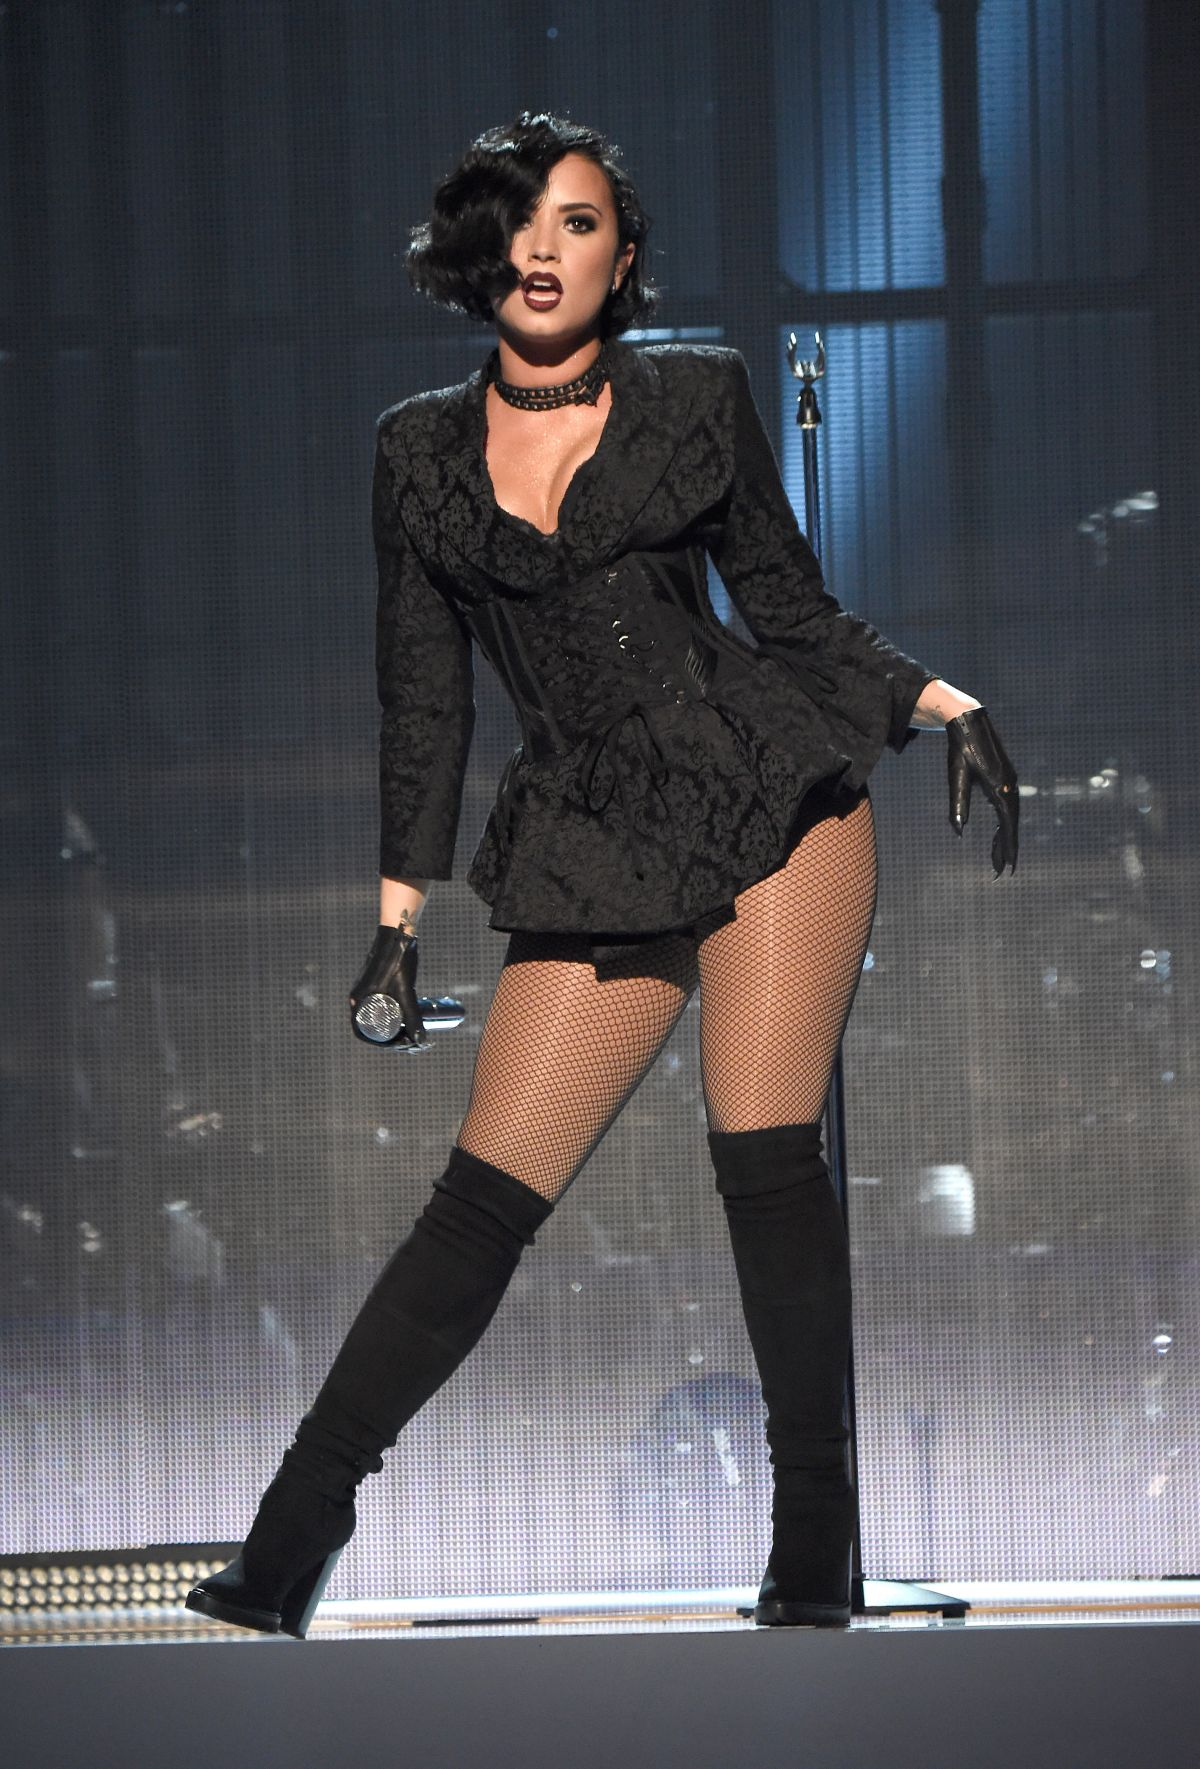 DEMI LOVATO Performs at American Music Awards 2015 11/22/2015